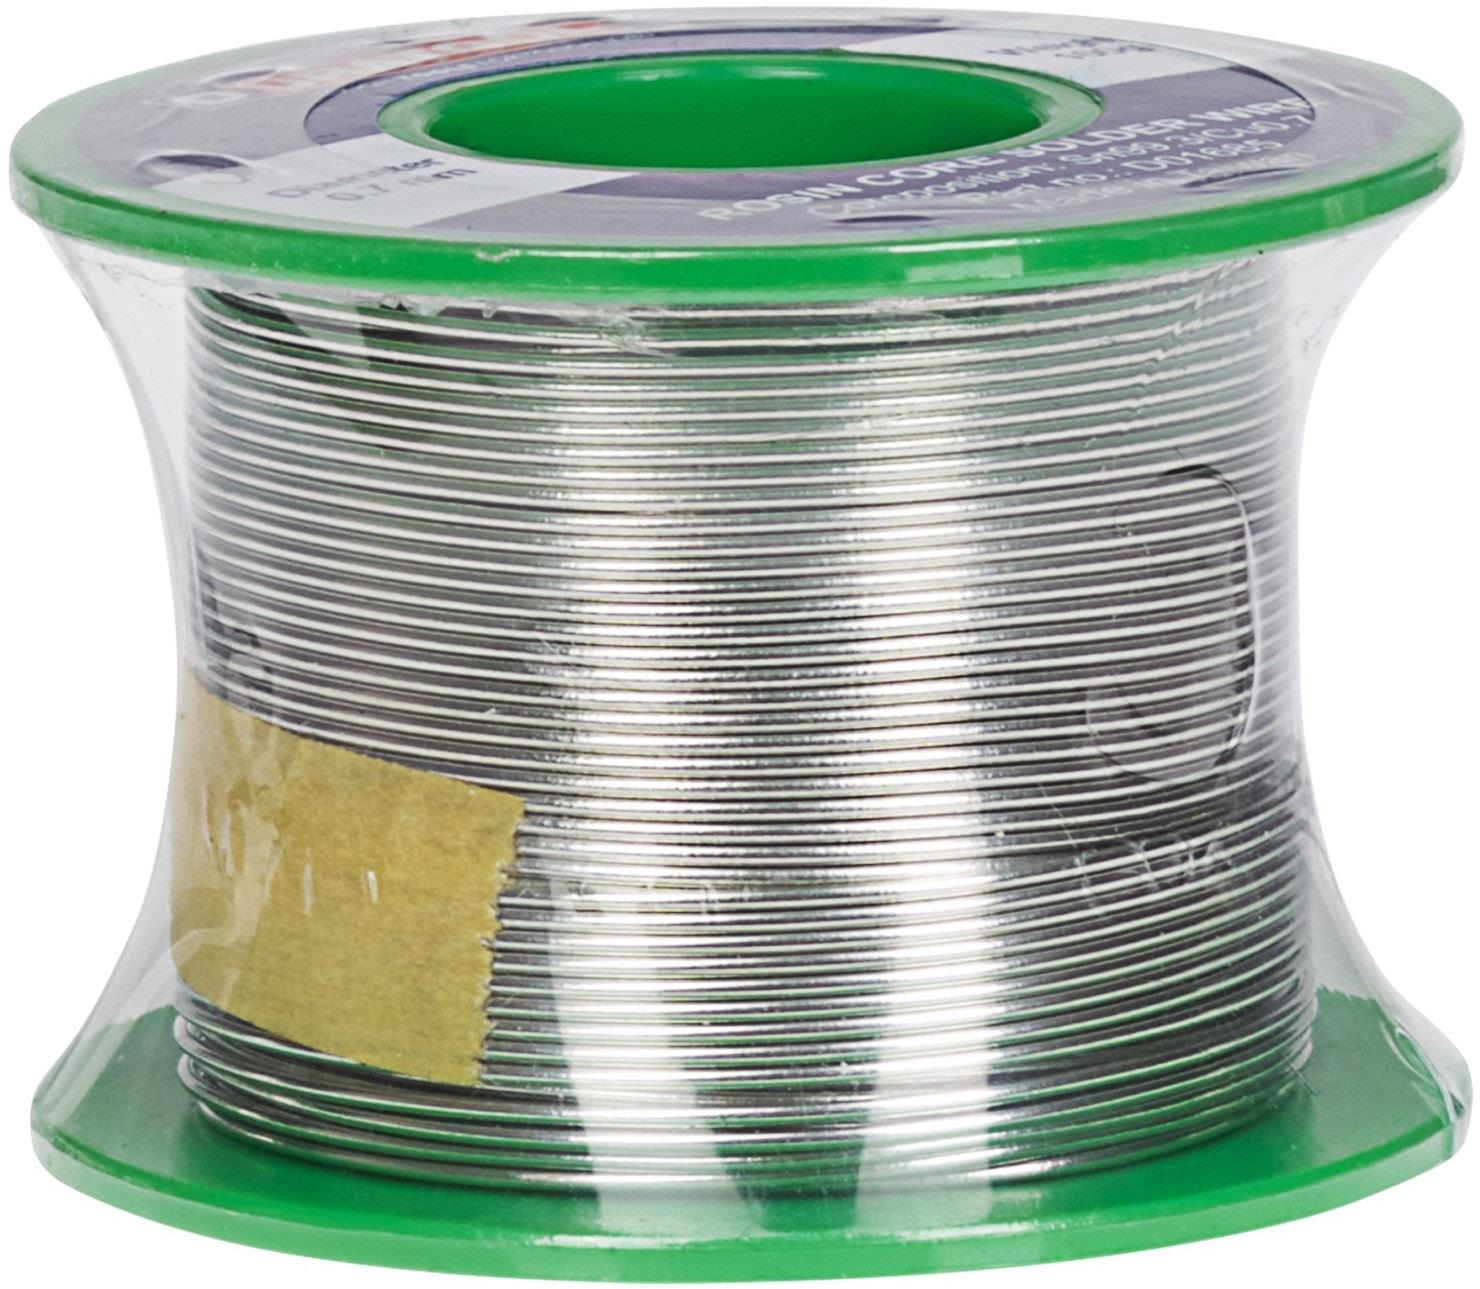 DURATOOL Lead Free Solder Wire, 1.2mm, 100g